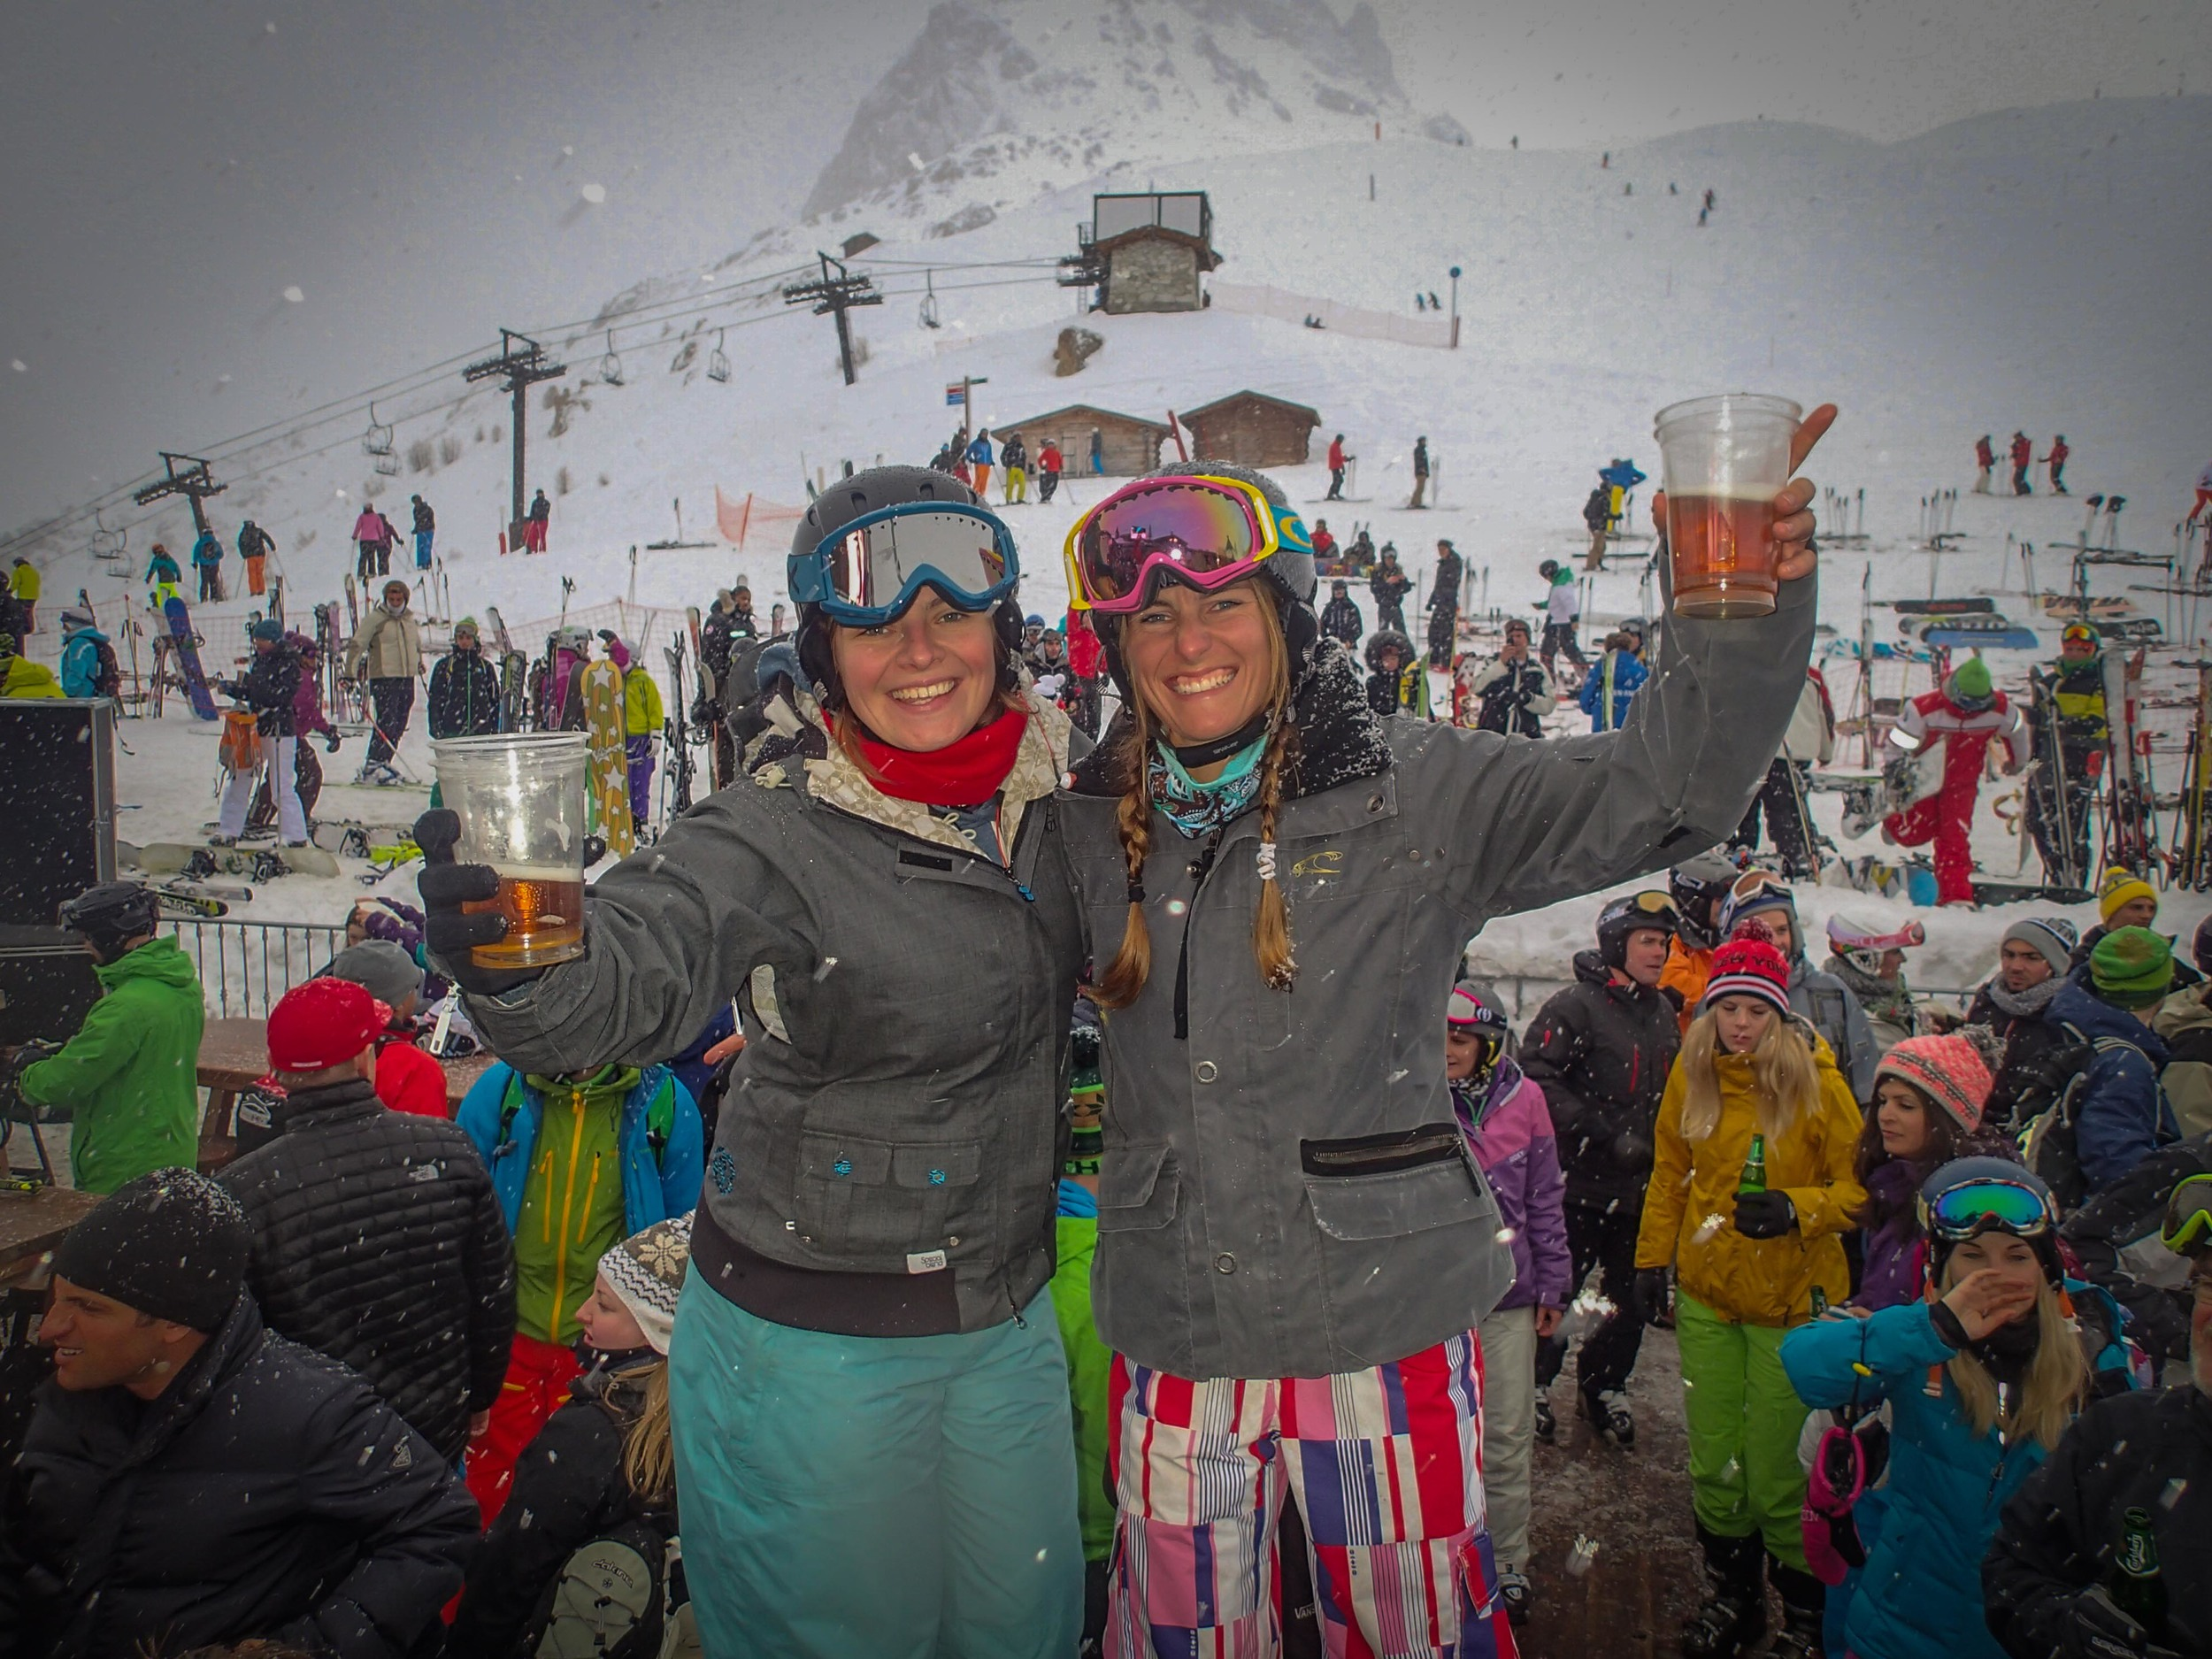 Partying at the Folie Douce!